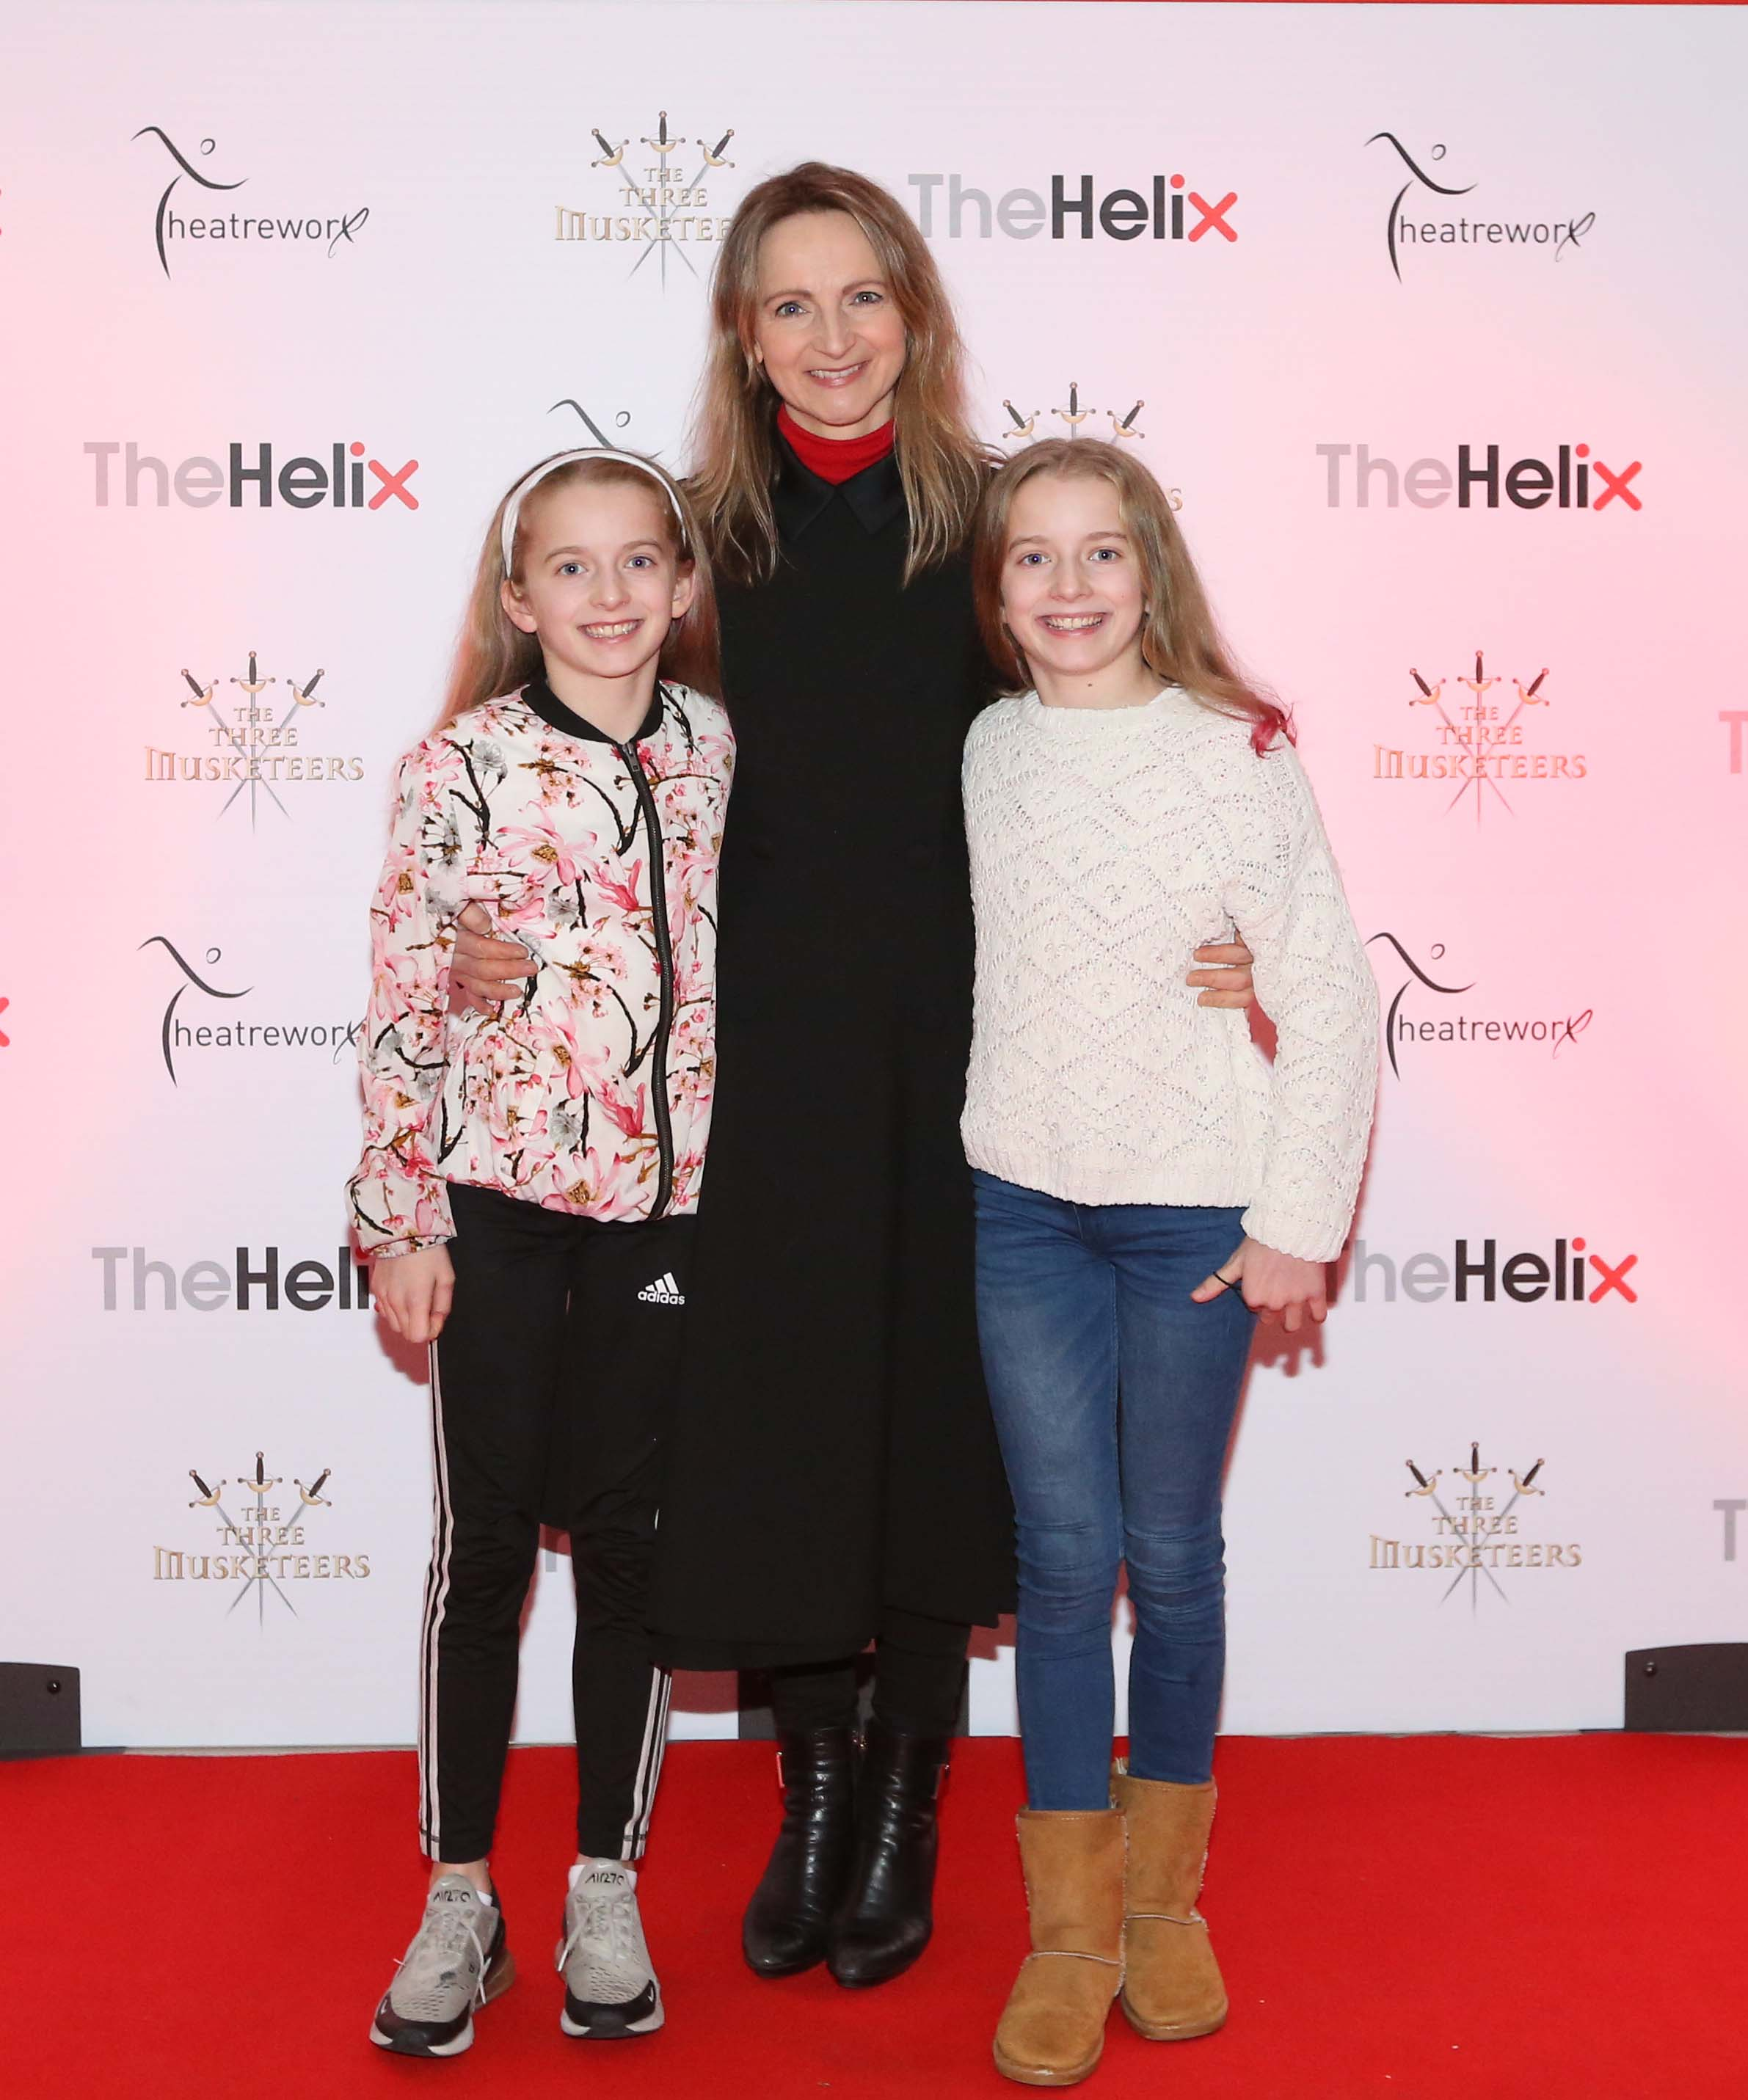 Pictured are (LtoR) Norma Sheahan with daughters Isabelle and Jessica Benwell at the opening night of The Three Musketeers at The Helix.  Photo: Sasko Lazarov/Photocall Ireland